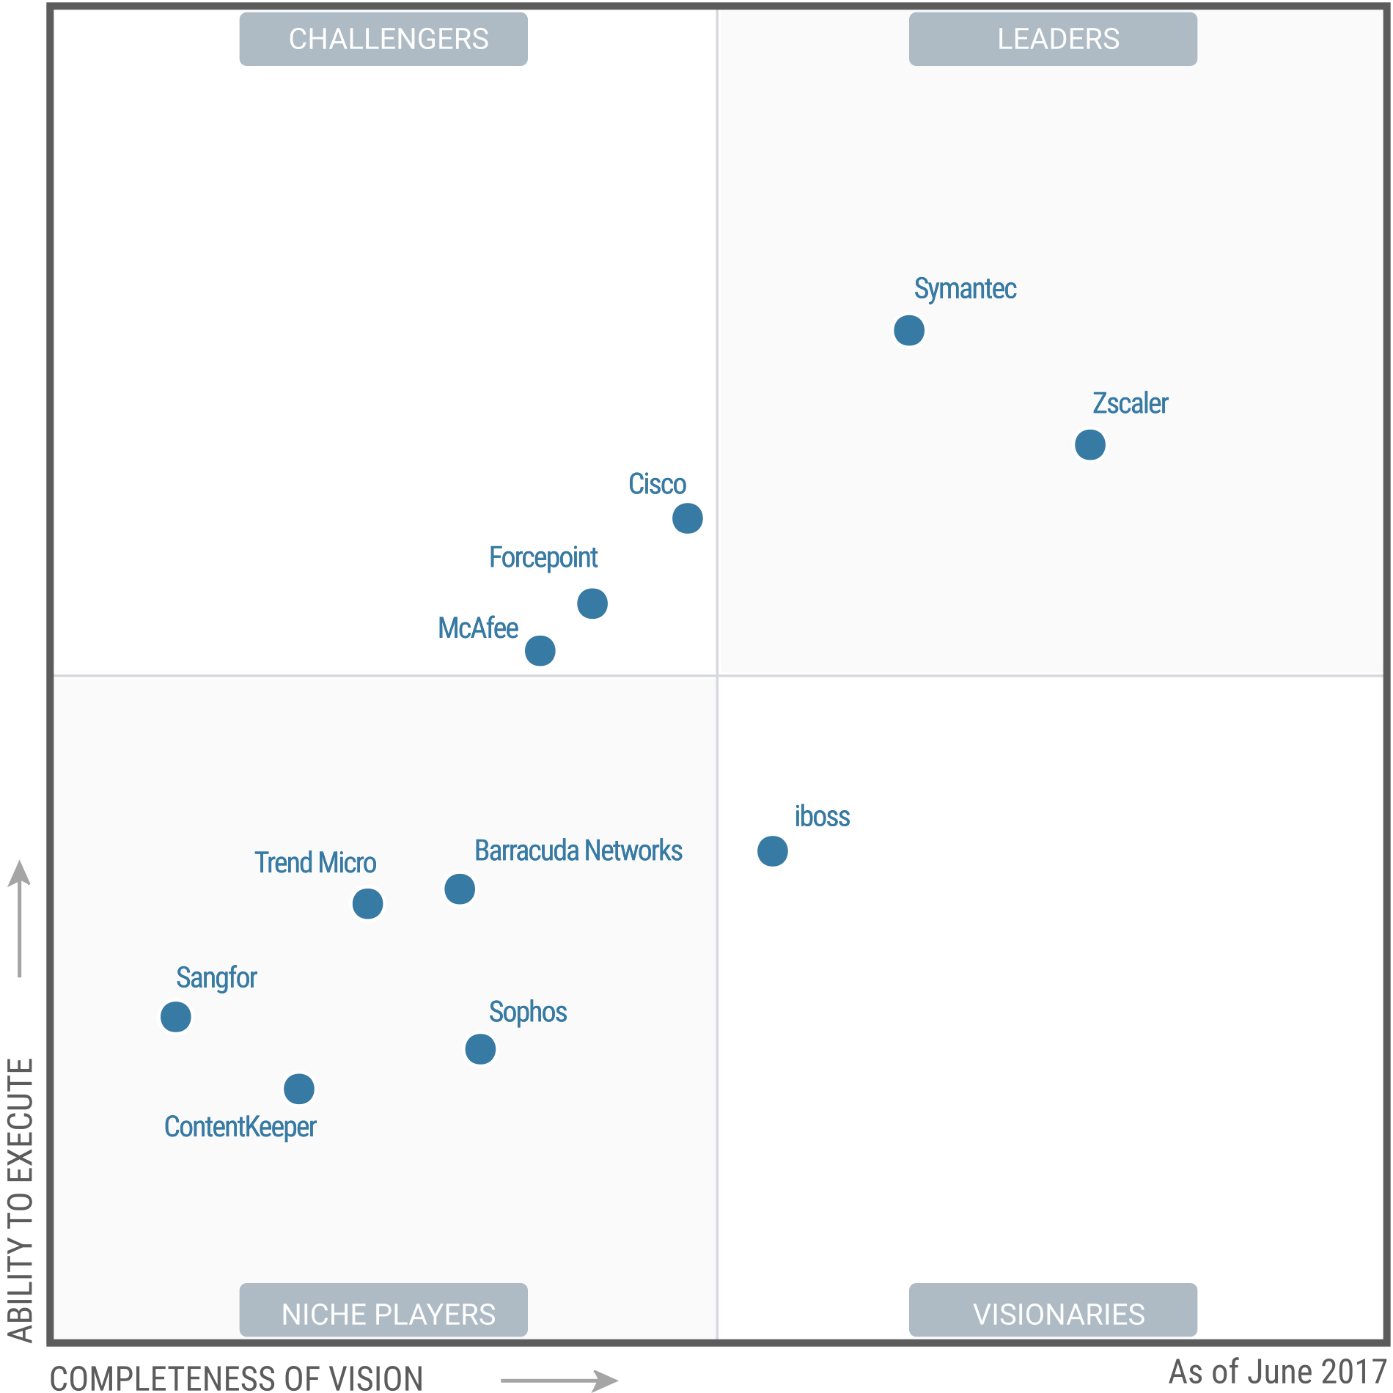 Magic Quadrant for Secure Web Gateways 2017 (G00328904)